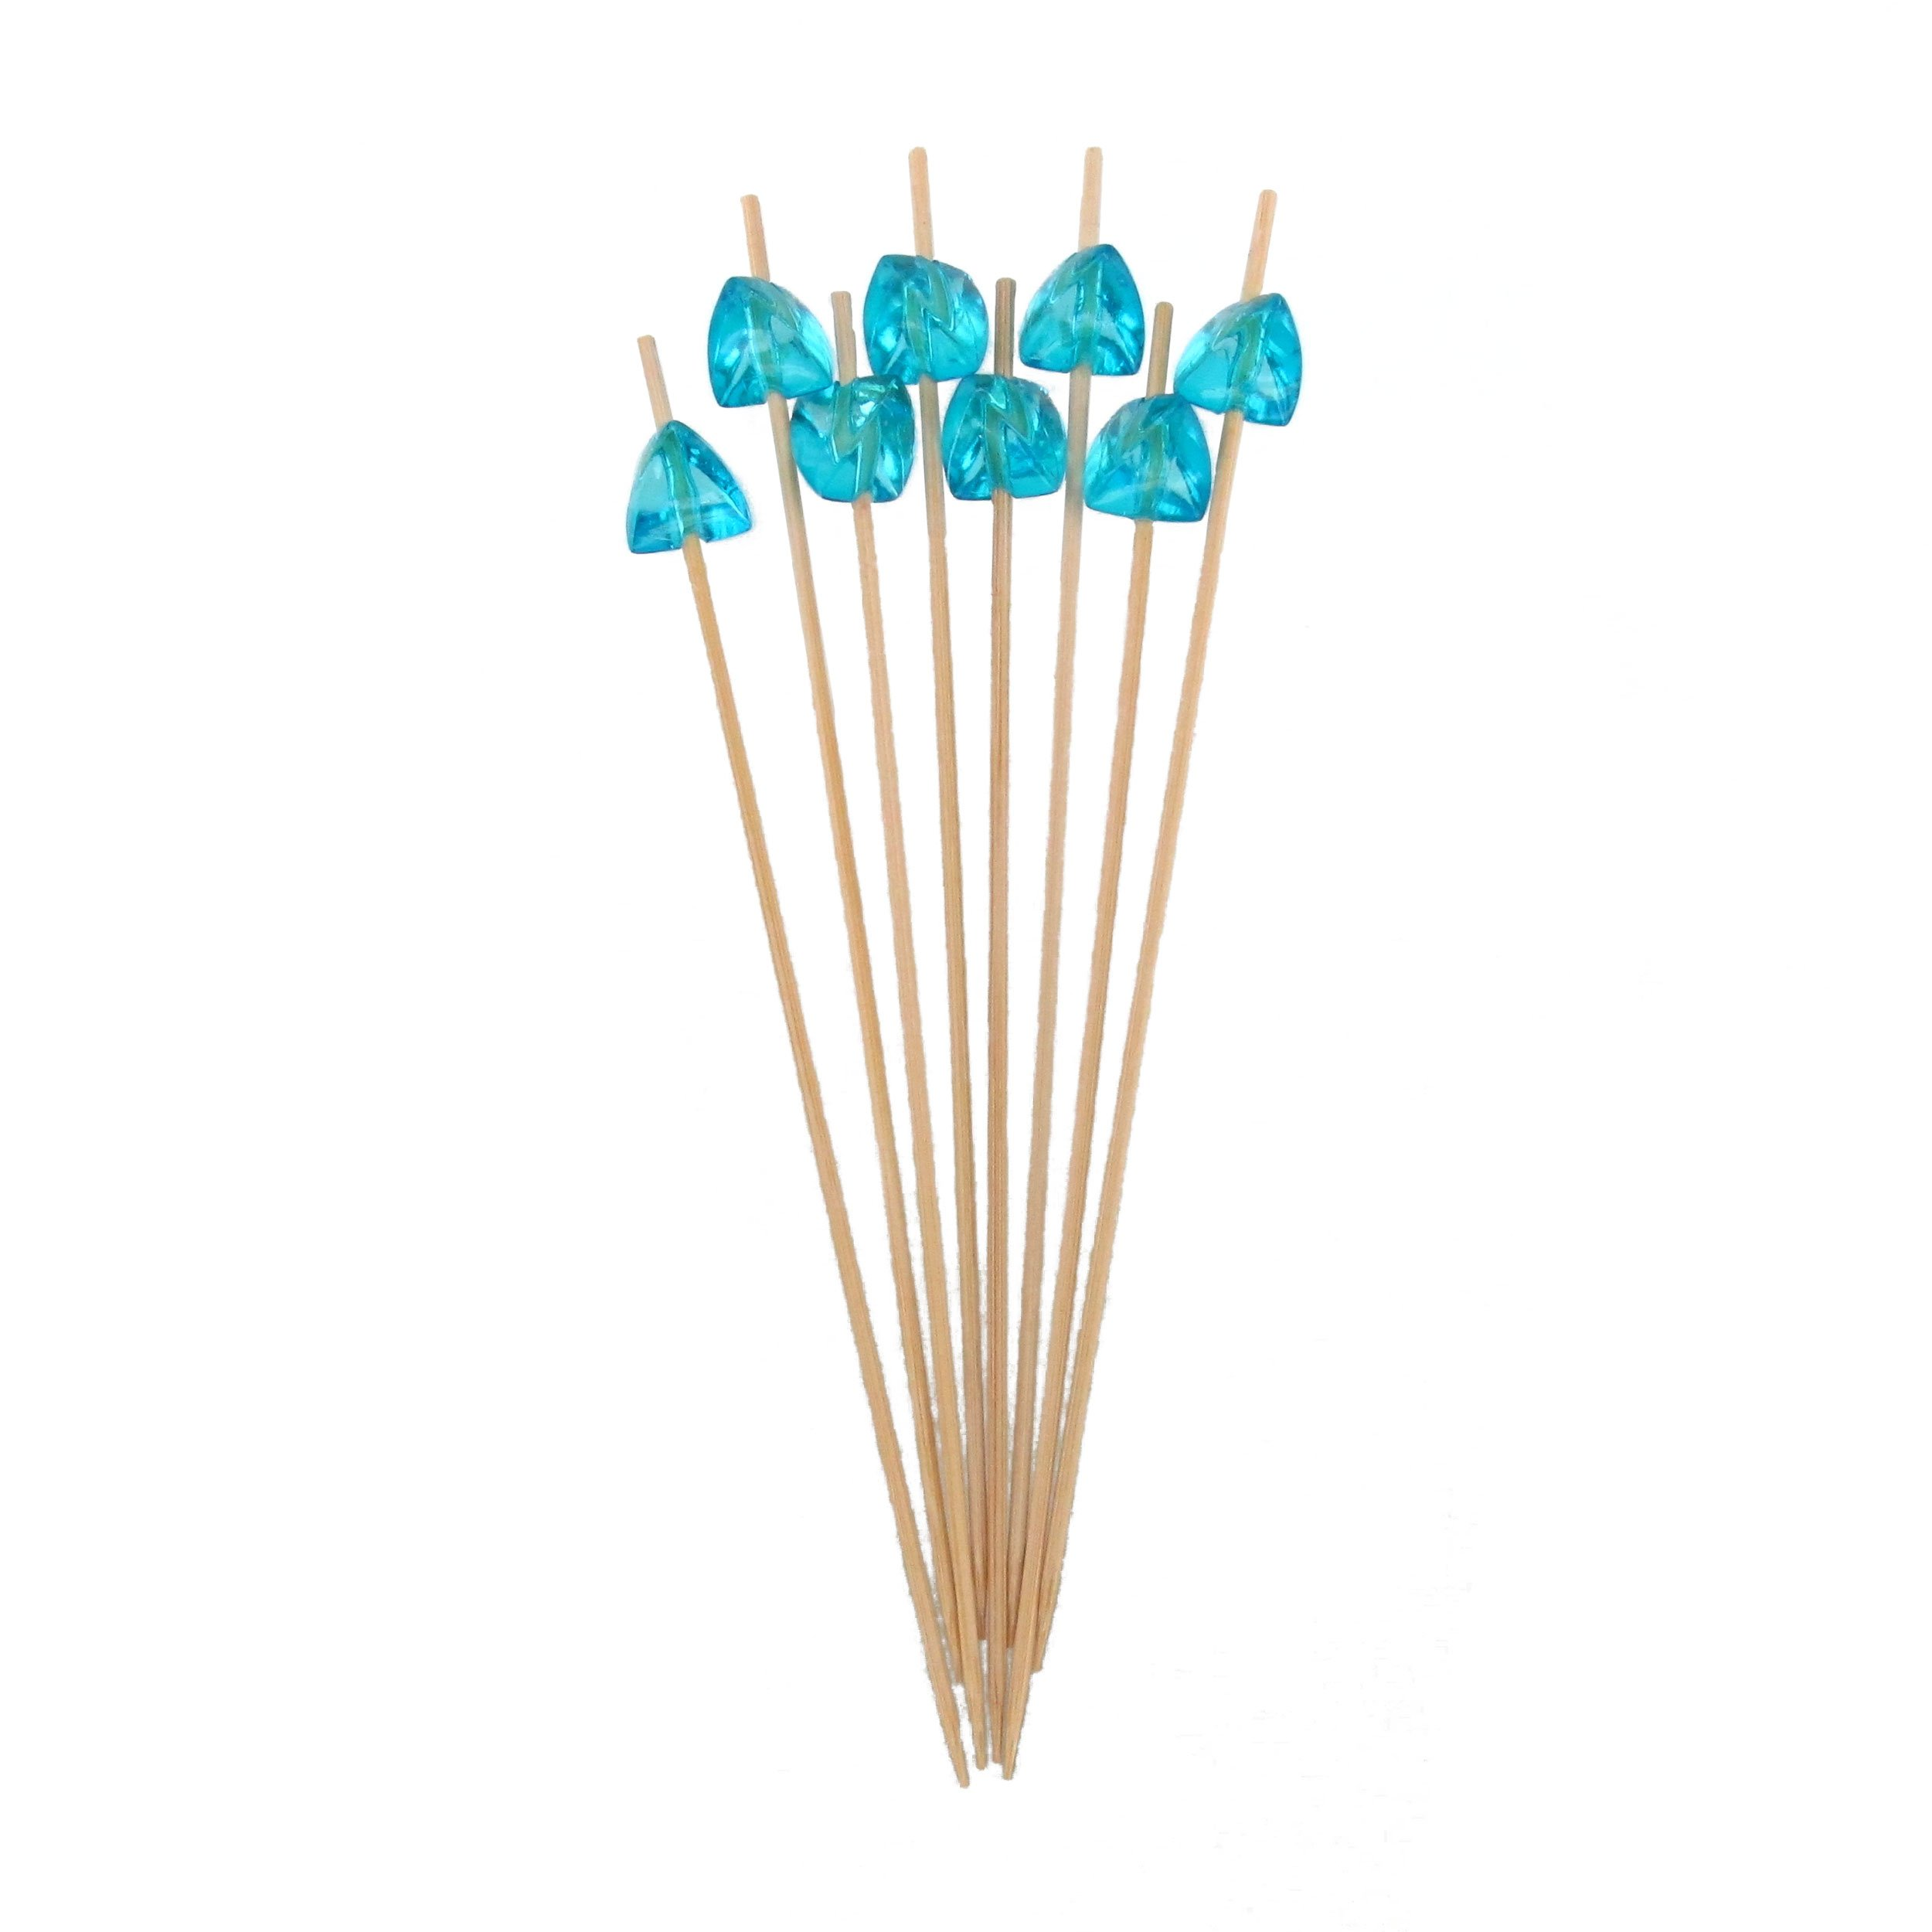 BambooMN 5.9'' Decorative Acrylic Light Blue Gem End Bamboo Cocktail Fruit Sandwich Picks Skewers for Catered Events, Holiday's, Restaurants or Buffets Party Supplies, 100 Pcs